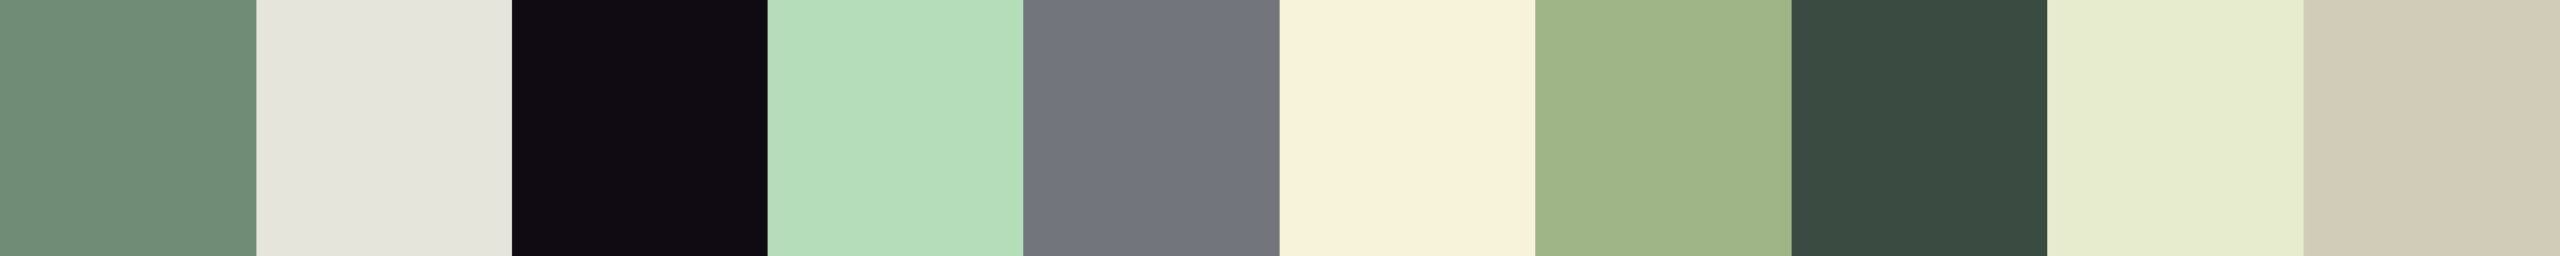 344 Aninteria Color Palette